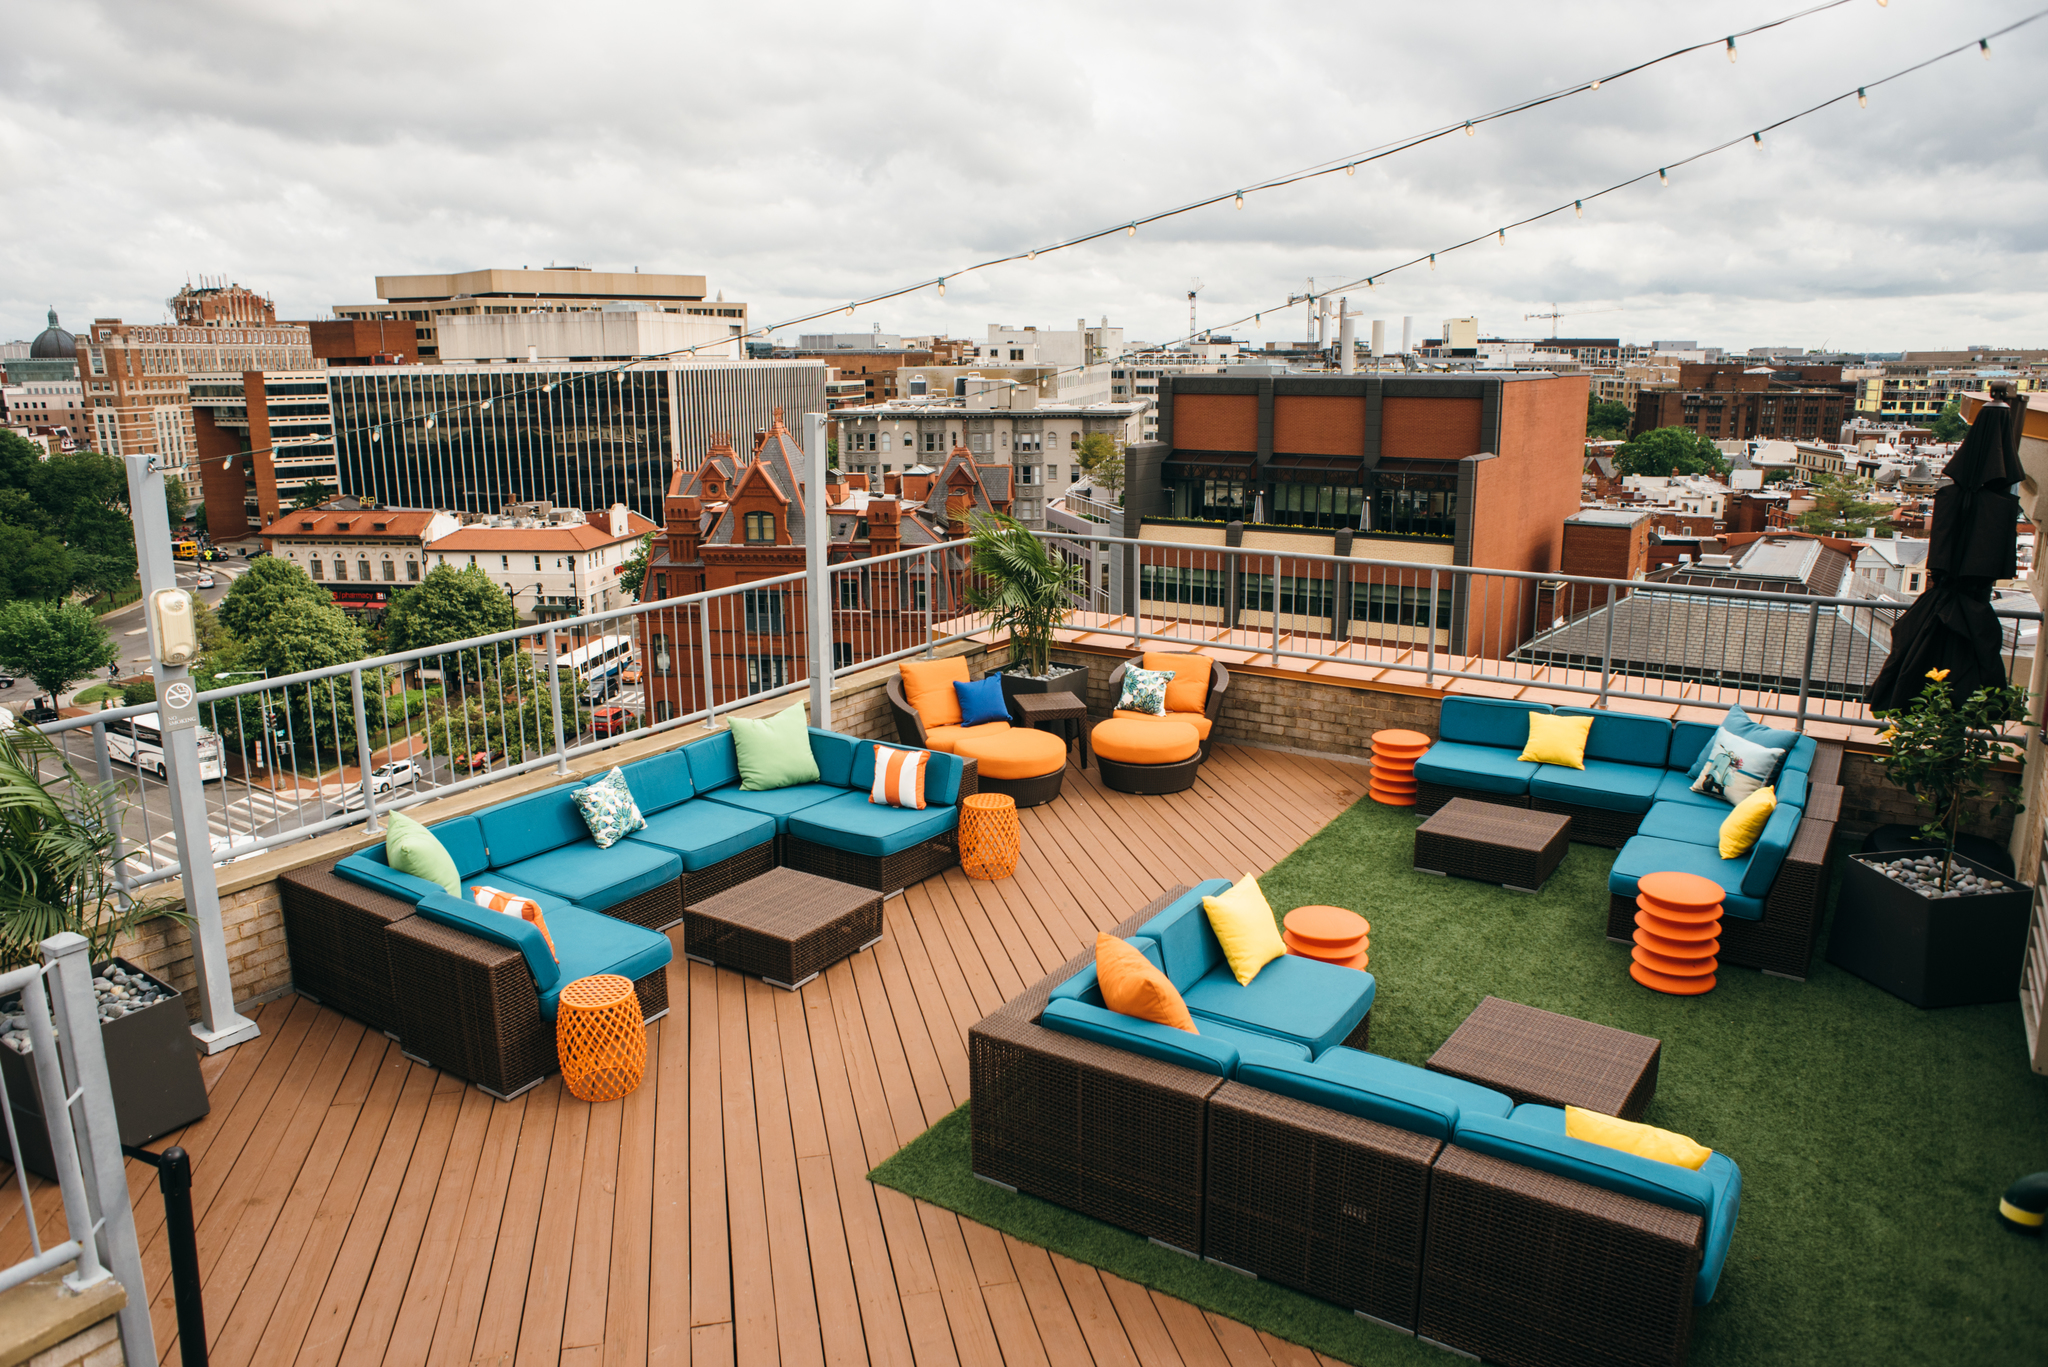 The Embassy Row rooftop has a pool and lounge area overlooking Washington, D.C.